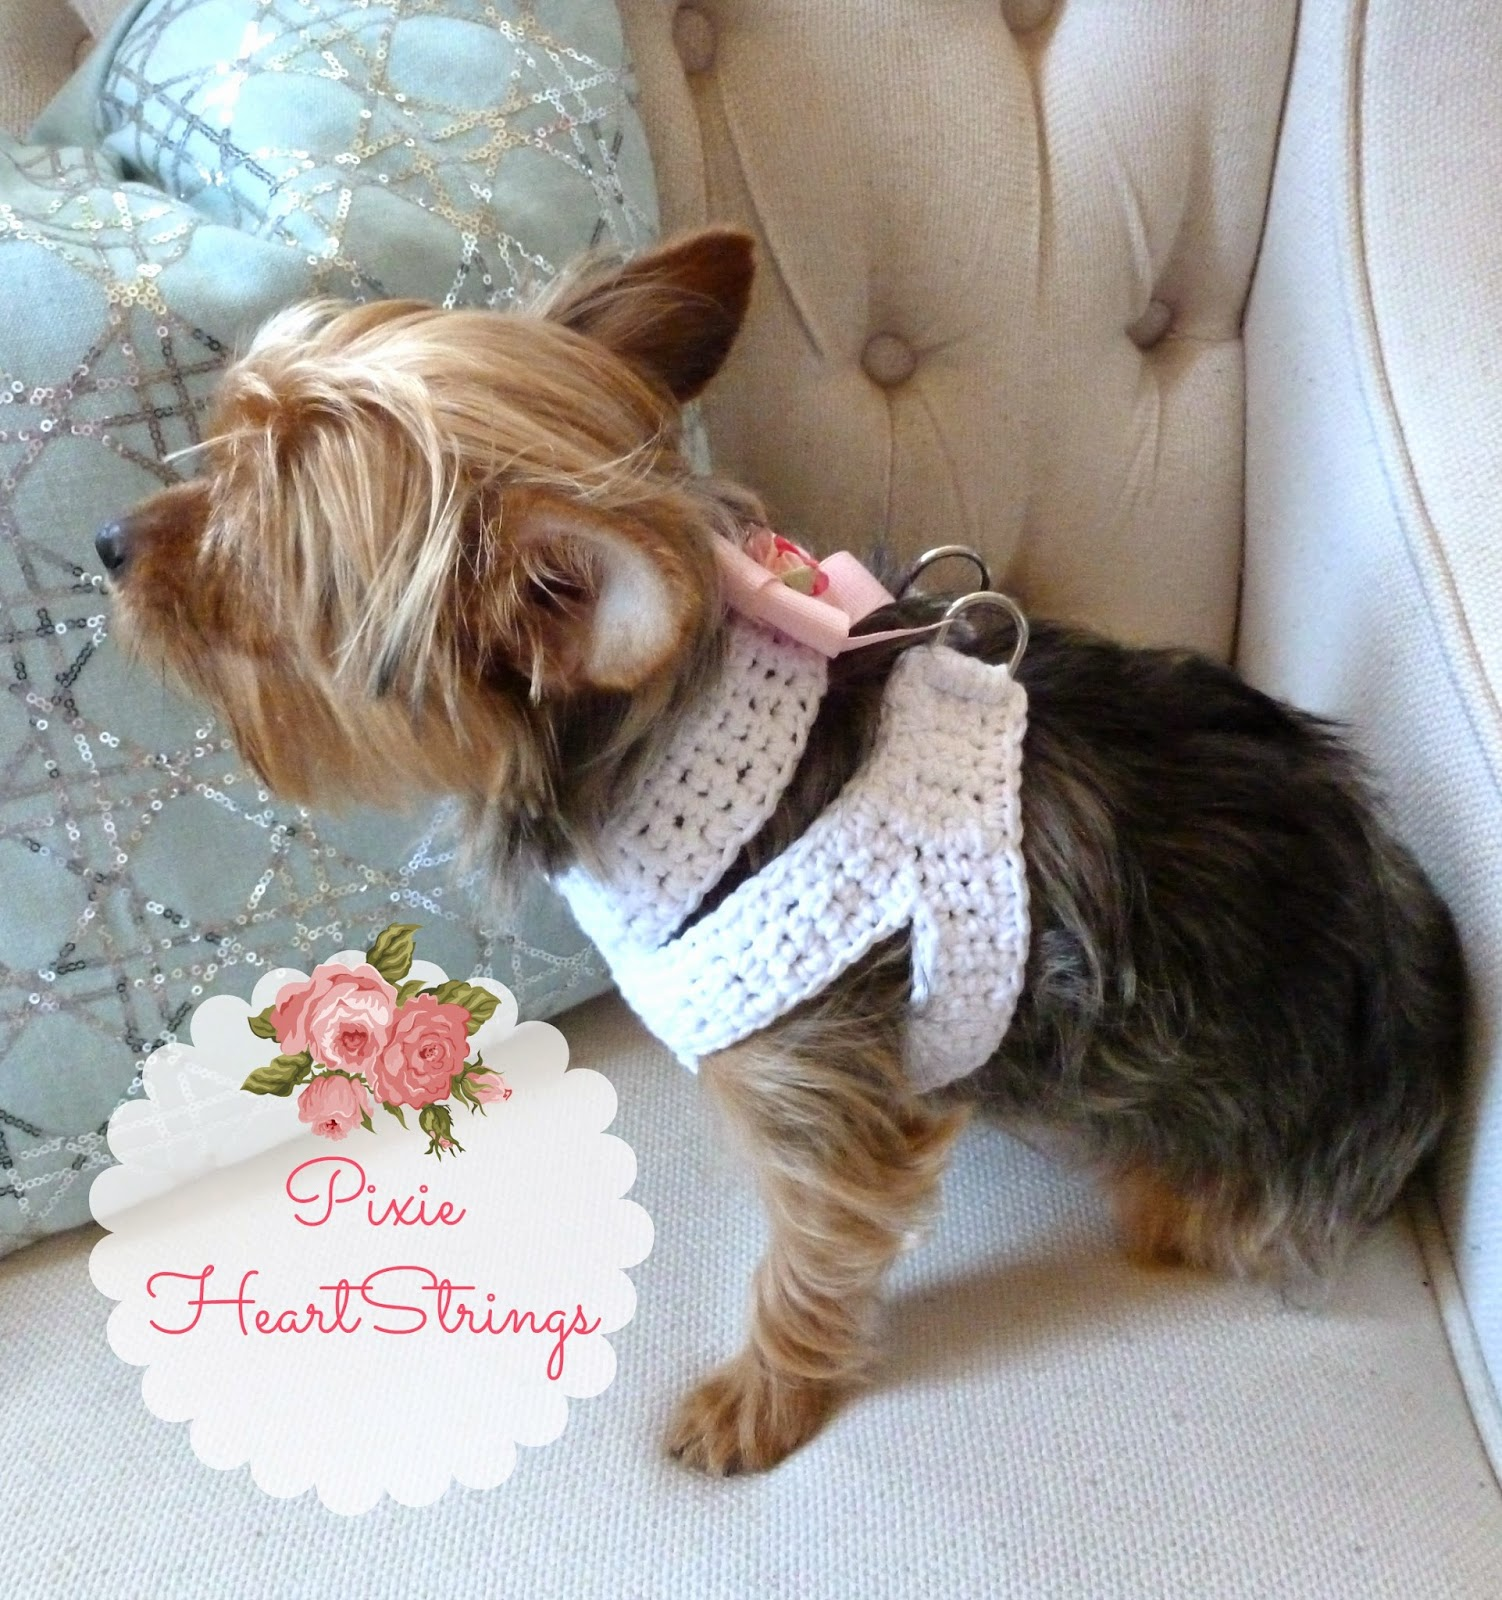 Tiny Dog Harnesses Wire Center Keyword Warping Machine Auto Control Energysaver Fromseekic Pixie Heartstrings A Crocheted Harness For Your Free Rh Pixieheartstrings Blogspot Com Vest Small Dogs